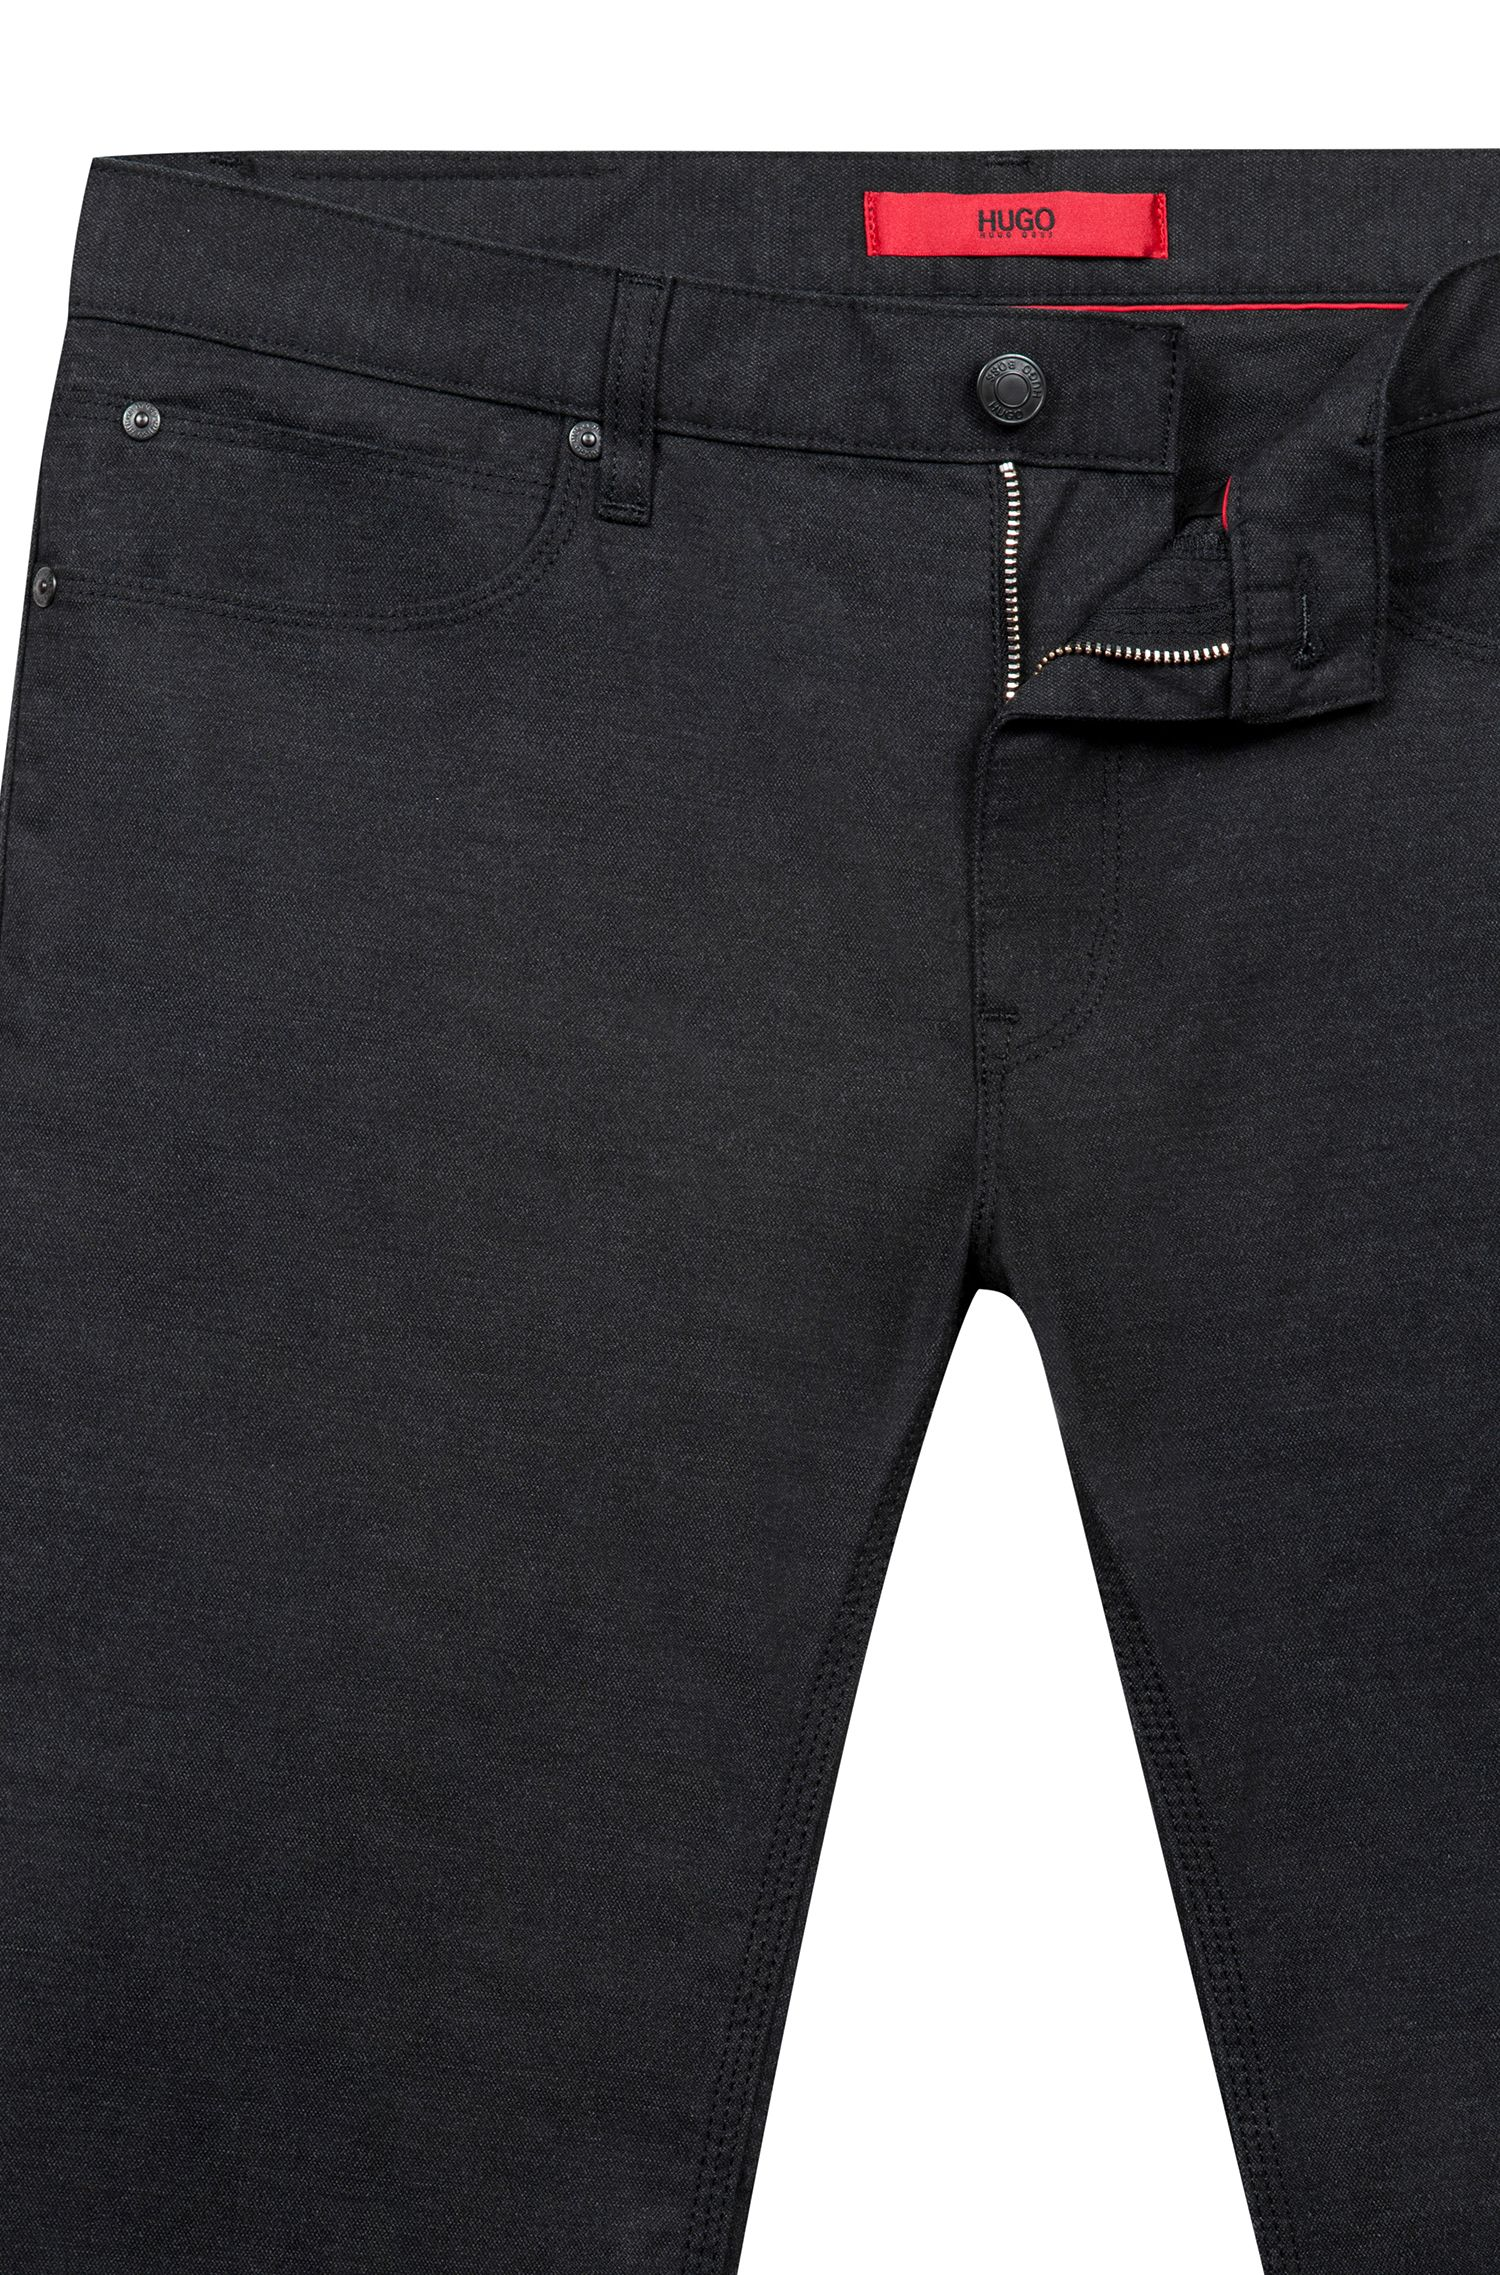 Jean Slim Fit en denim stretch avec patch logo inversé, Noir